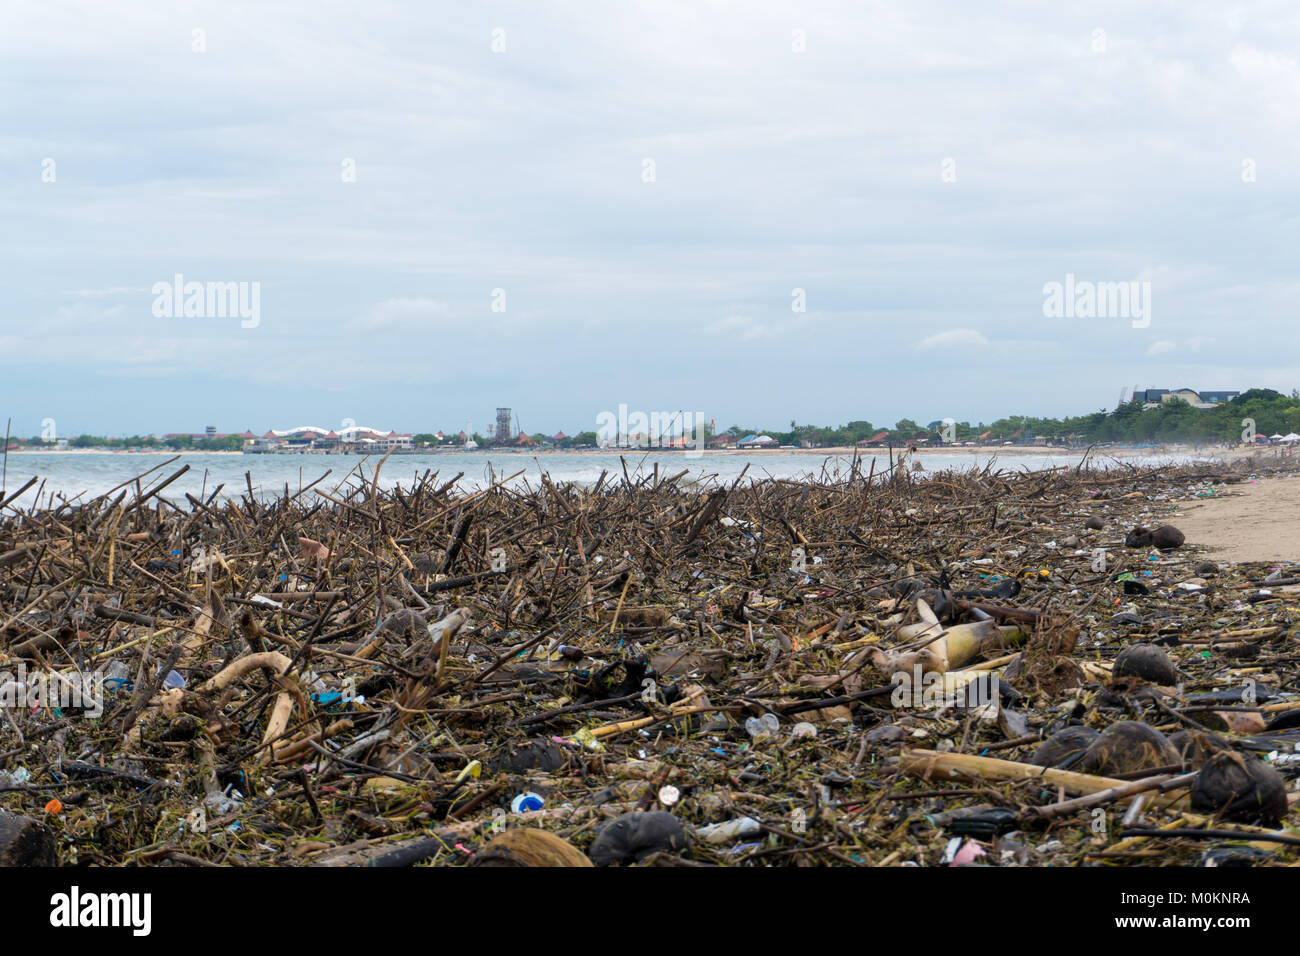 Pollution concept. Beach polluted with plastic garbage and tree branches Stock Photo